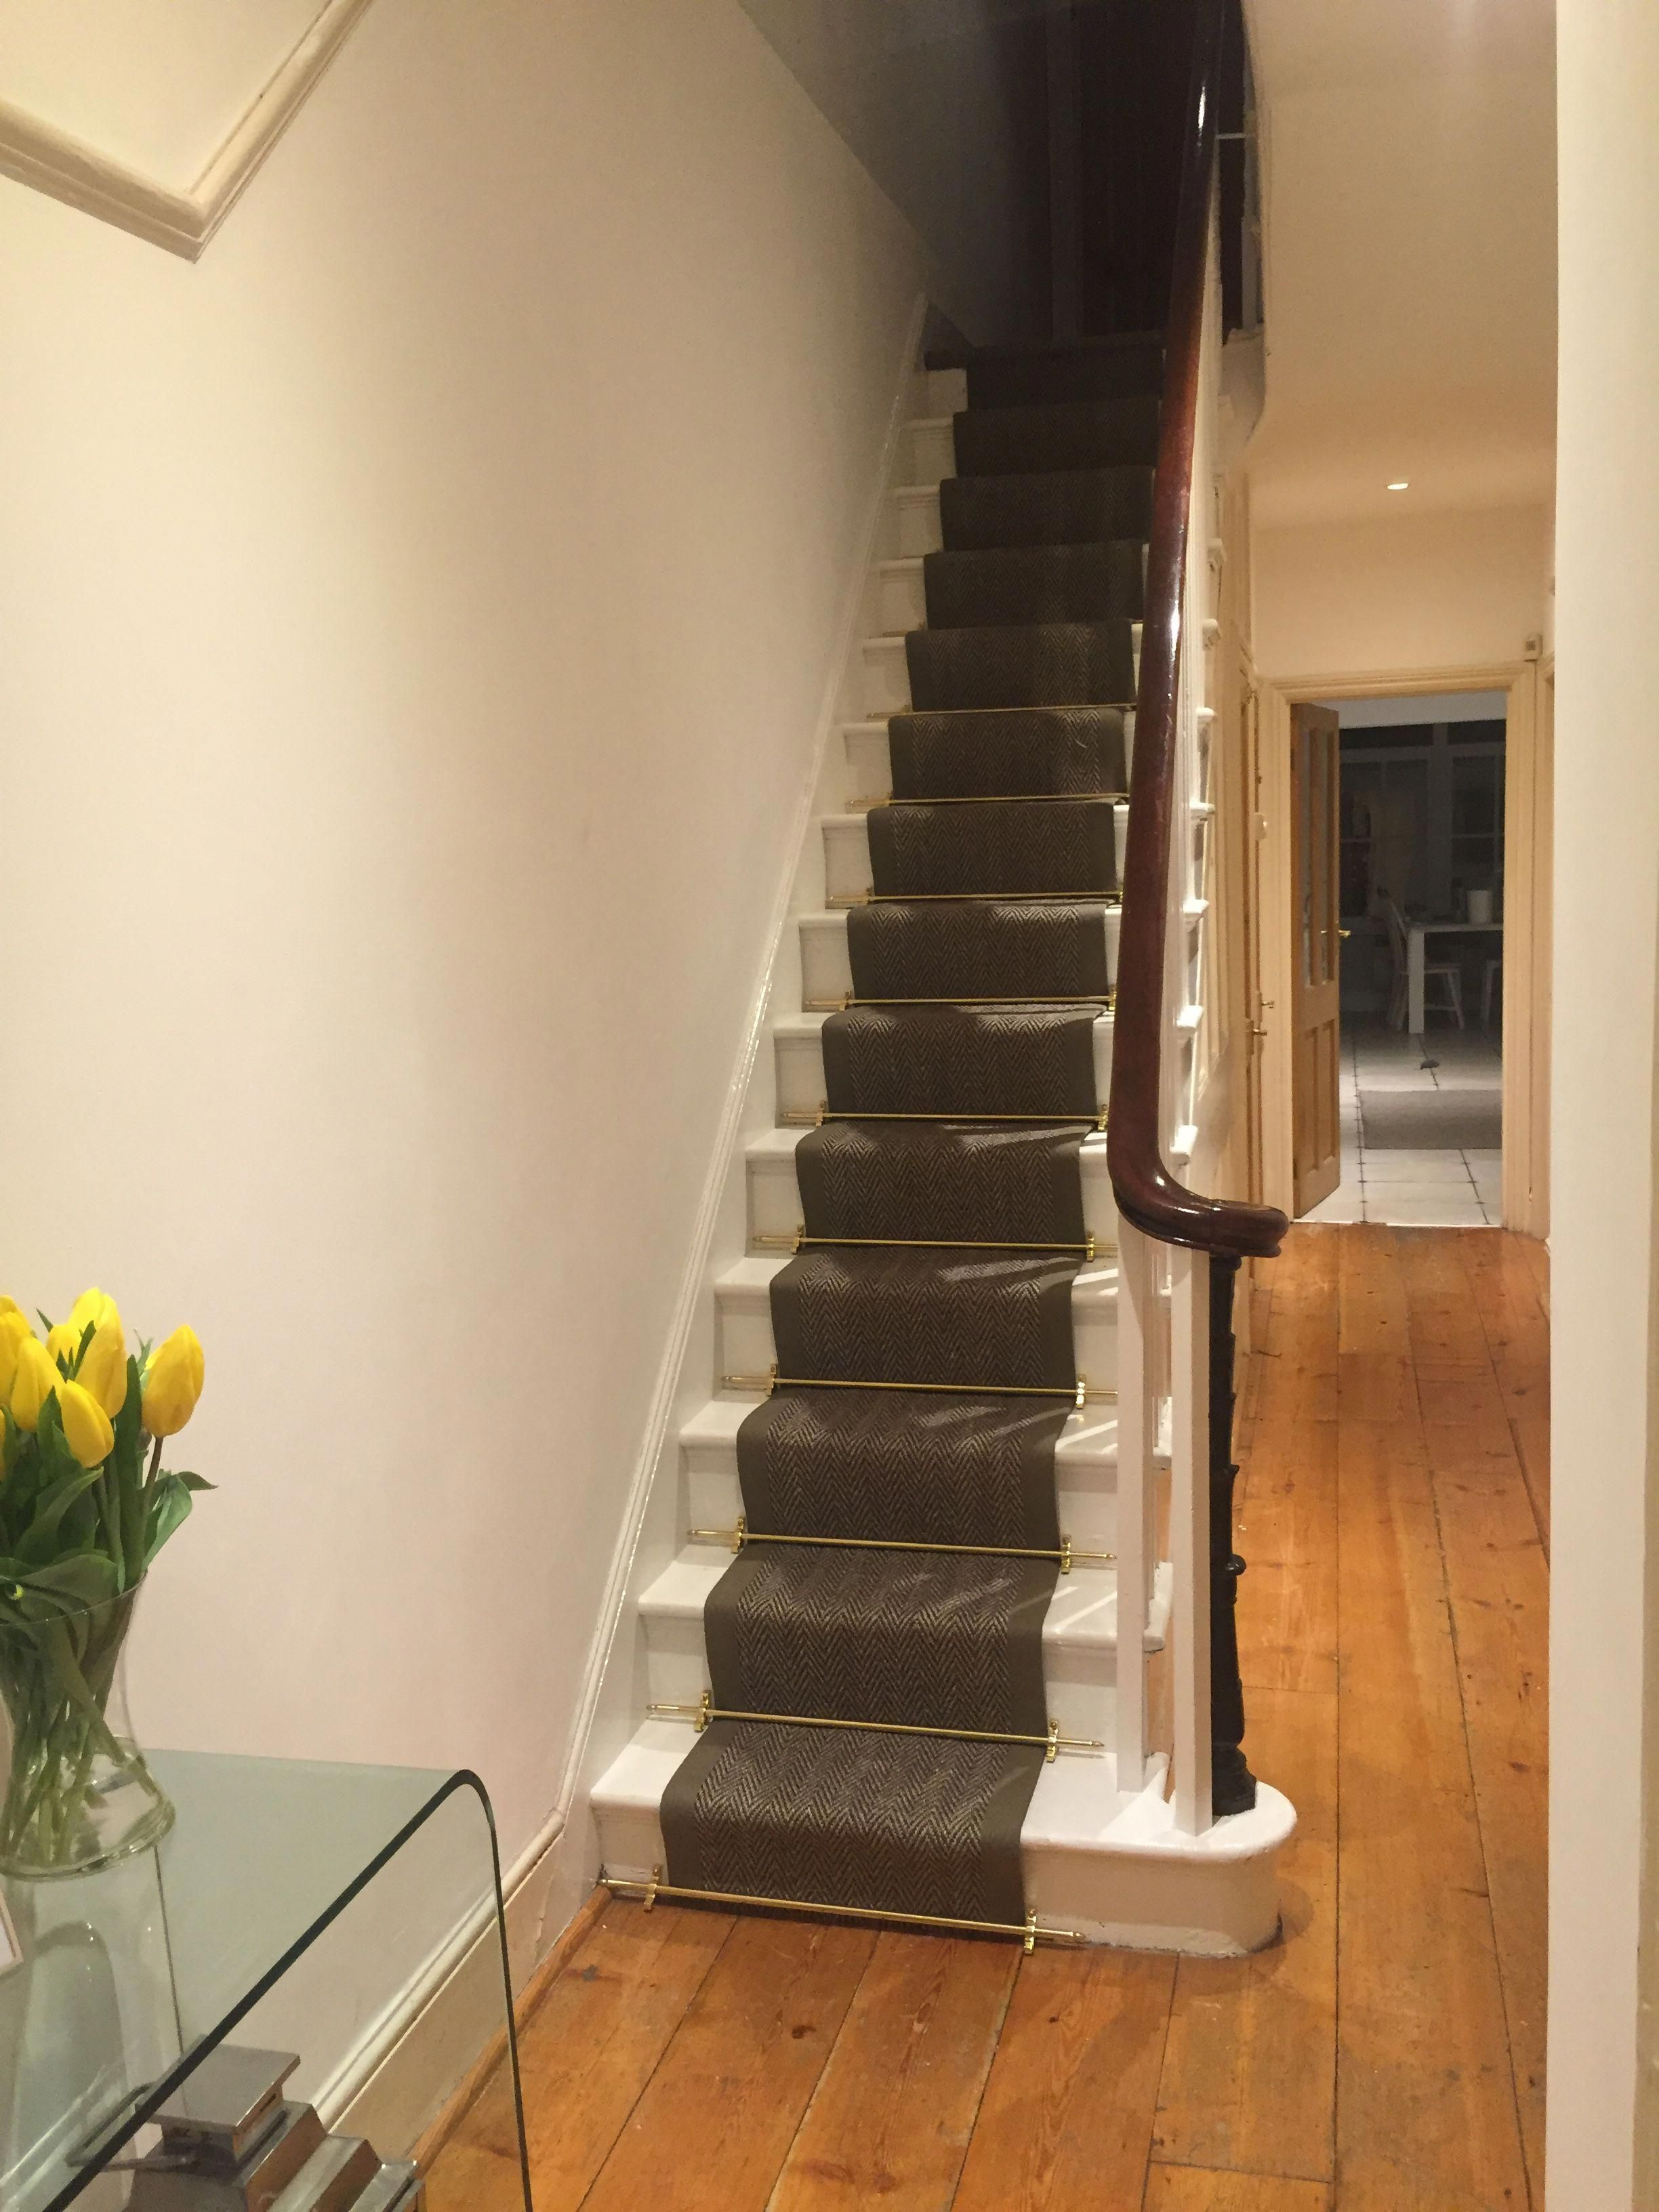 Best Stair Runner Finally In Place With Seagrass Carpet And 400 x 300